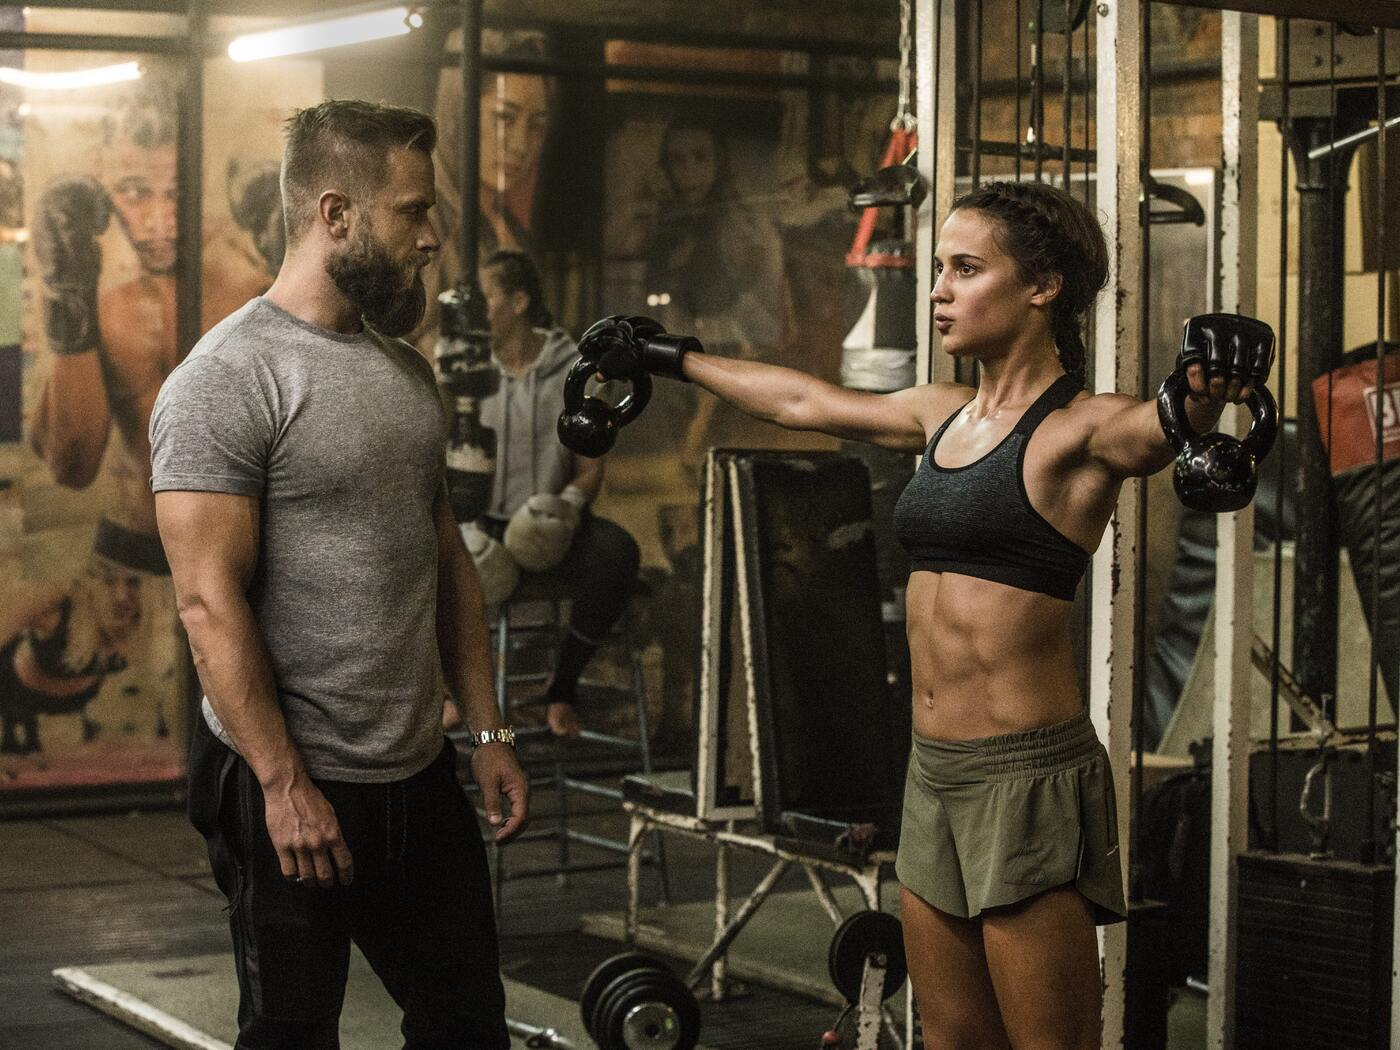 tomb-raider-2018-alicia-vikander-as-lara-croft-doing-workout-s3.jpg